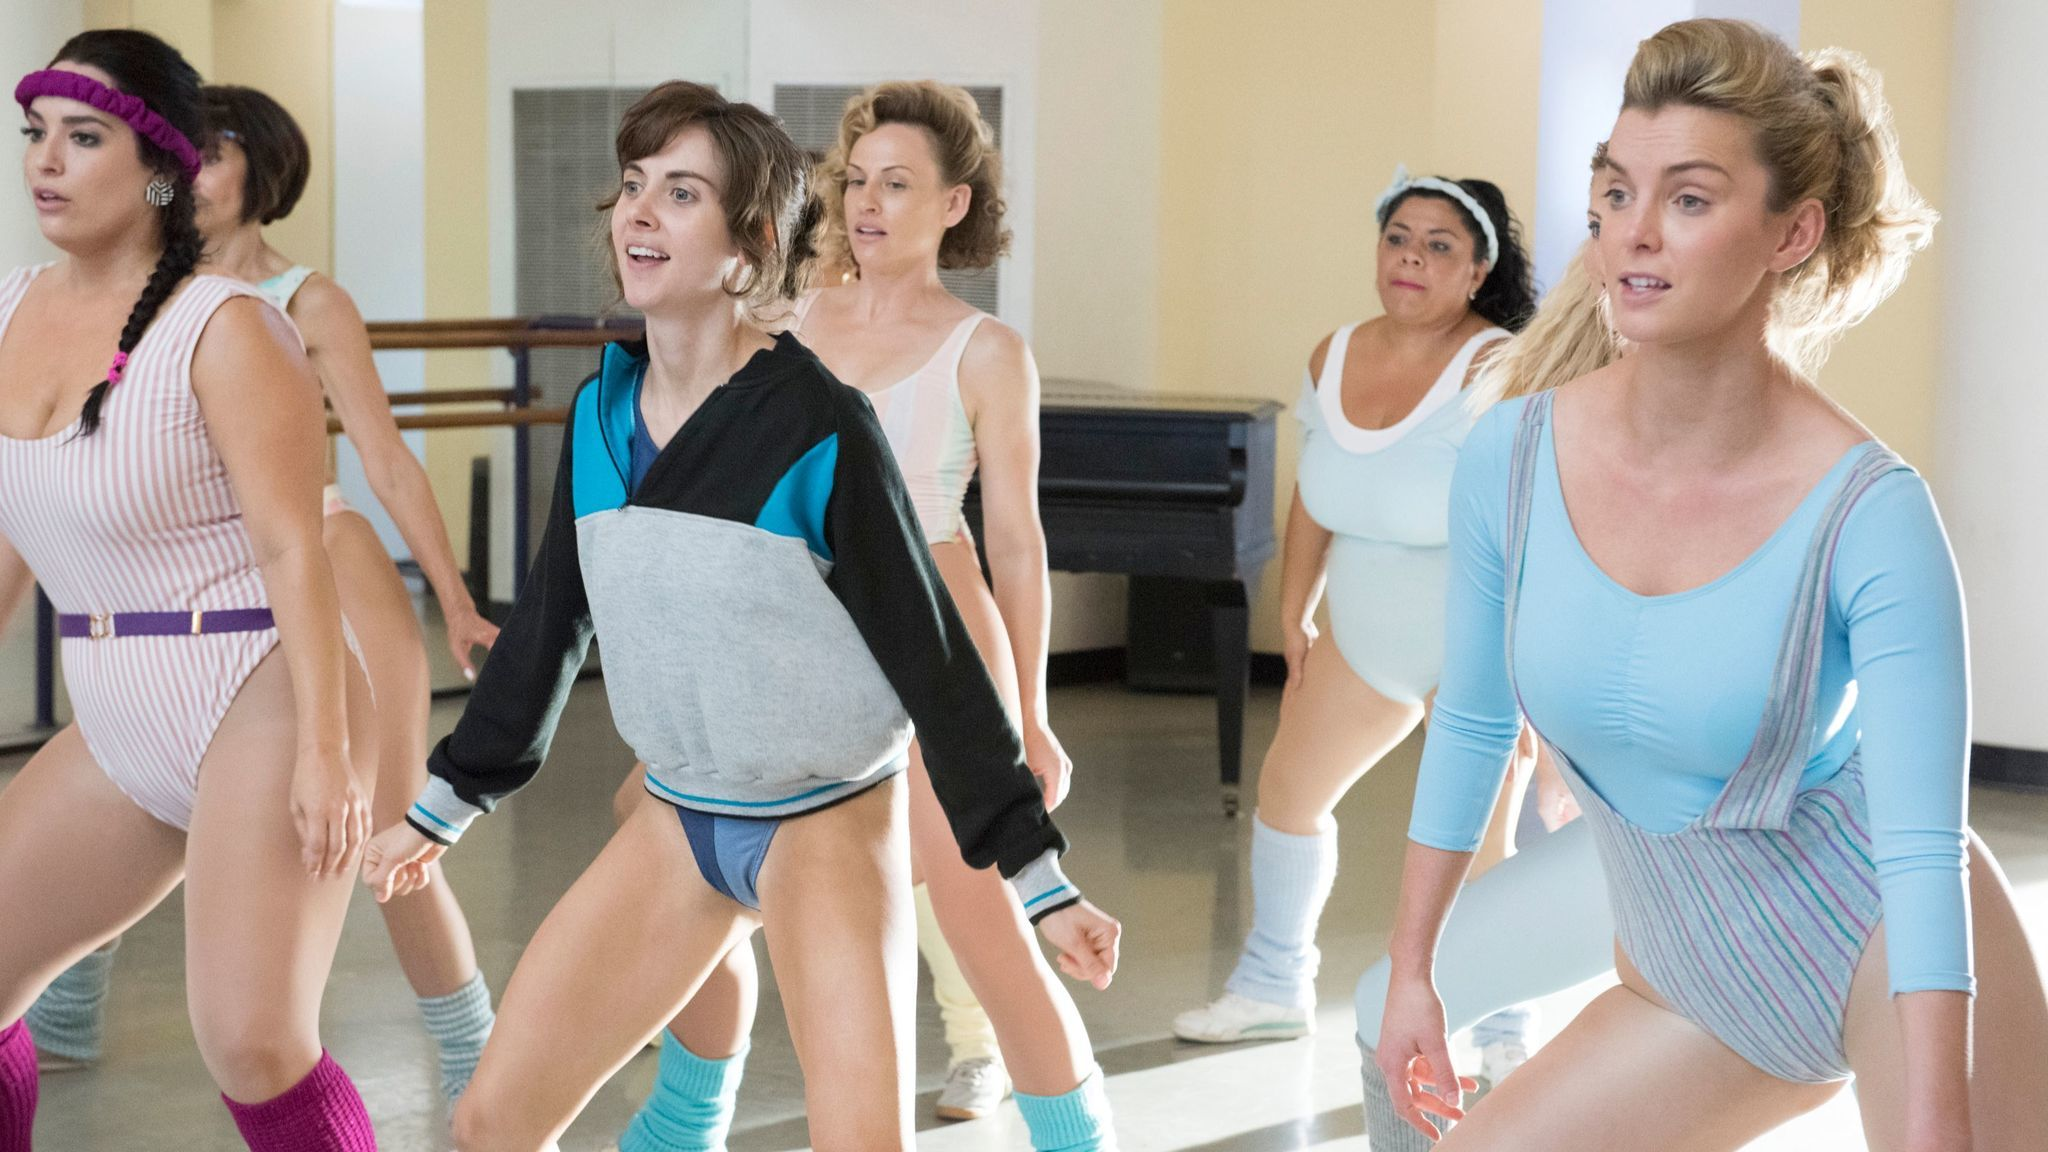 Alison Brie as Ruth and Betty Gilpin as Debbie in Netflix's